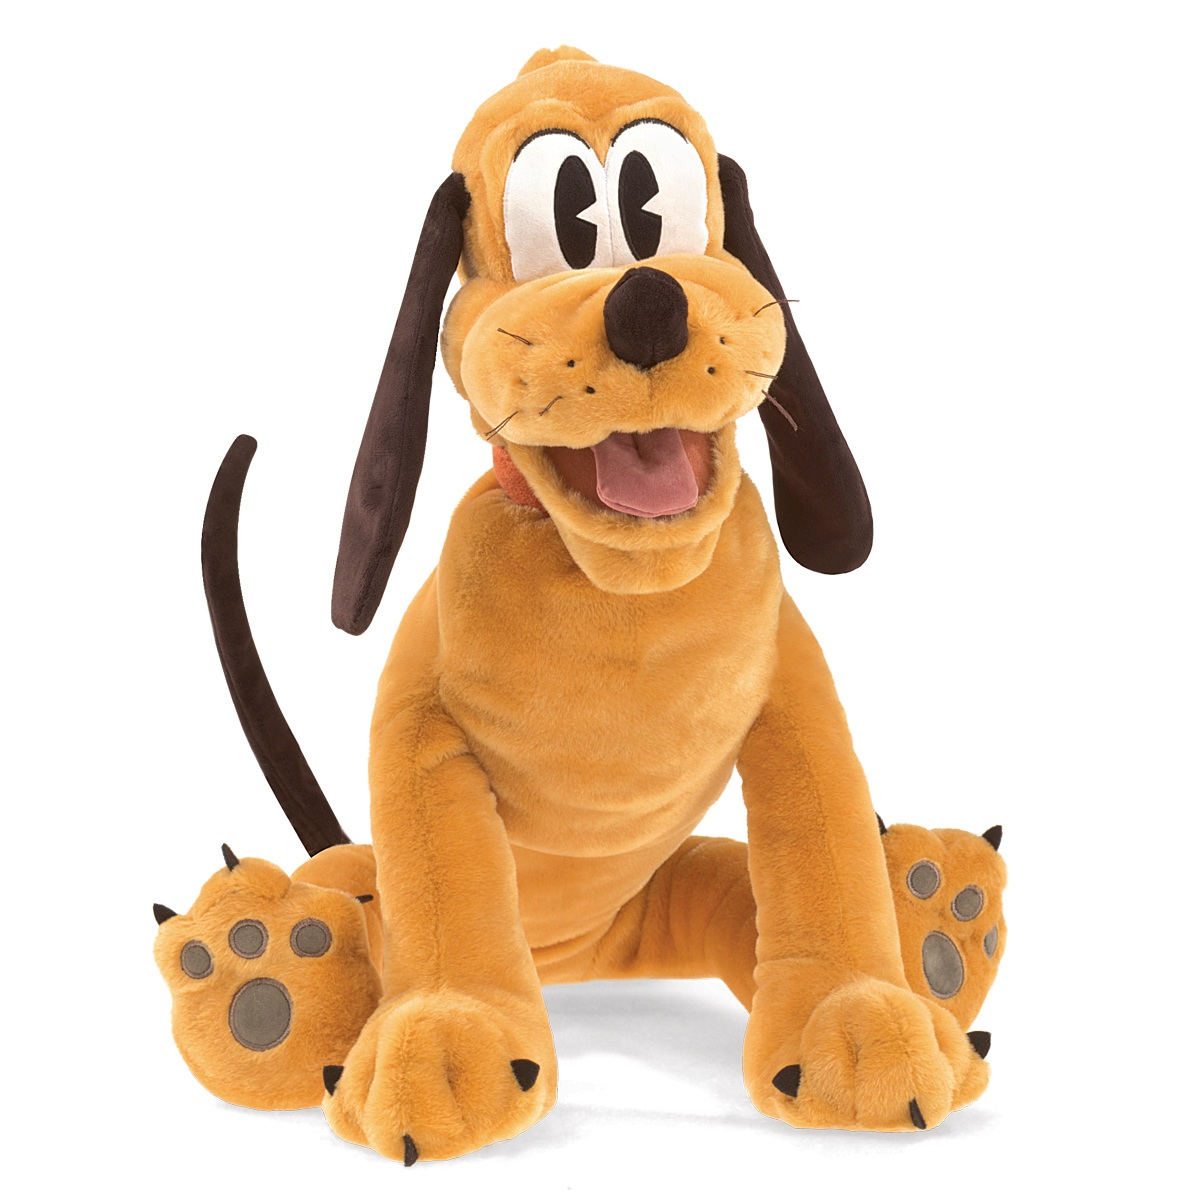 Disney Pluto Hand Puppet by Folkmanis 5010